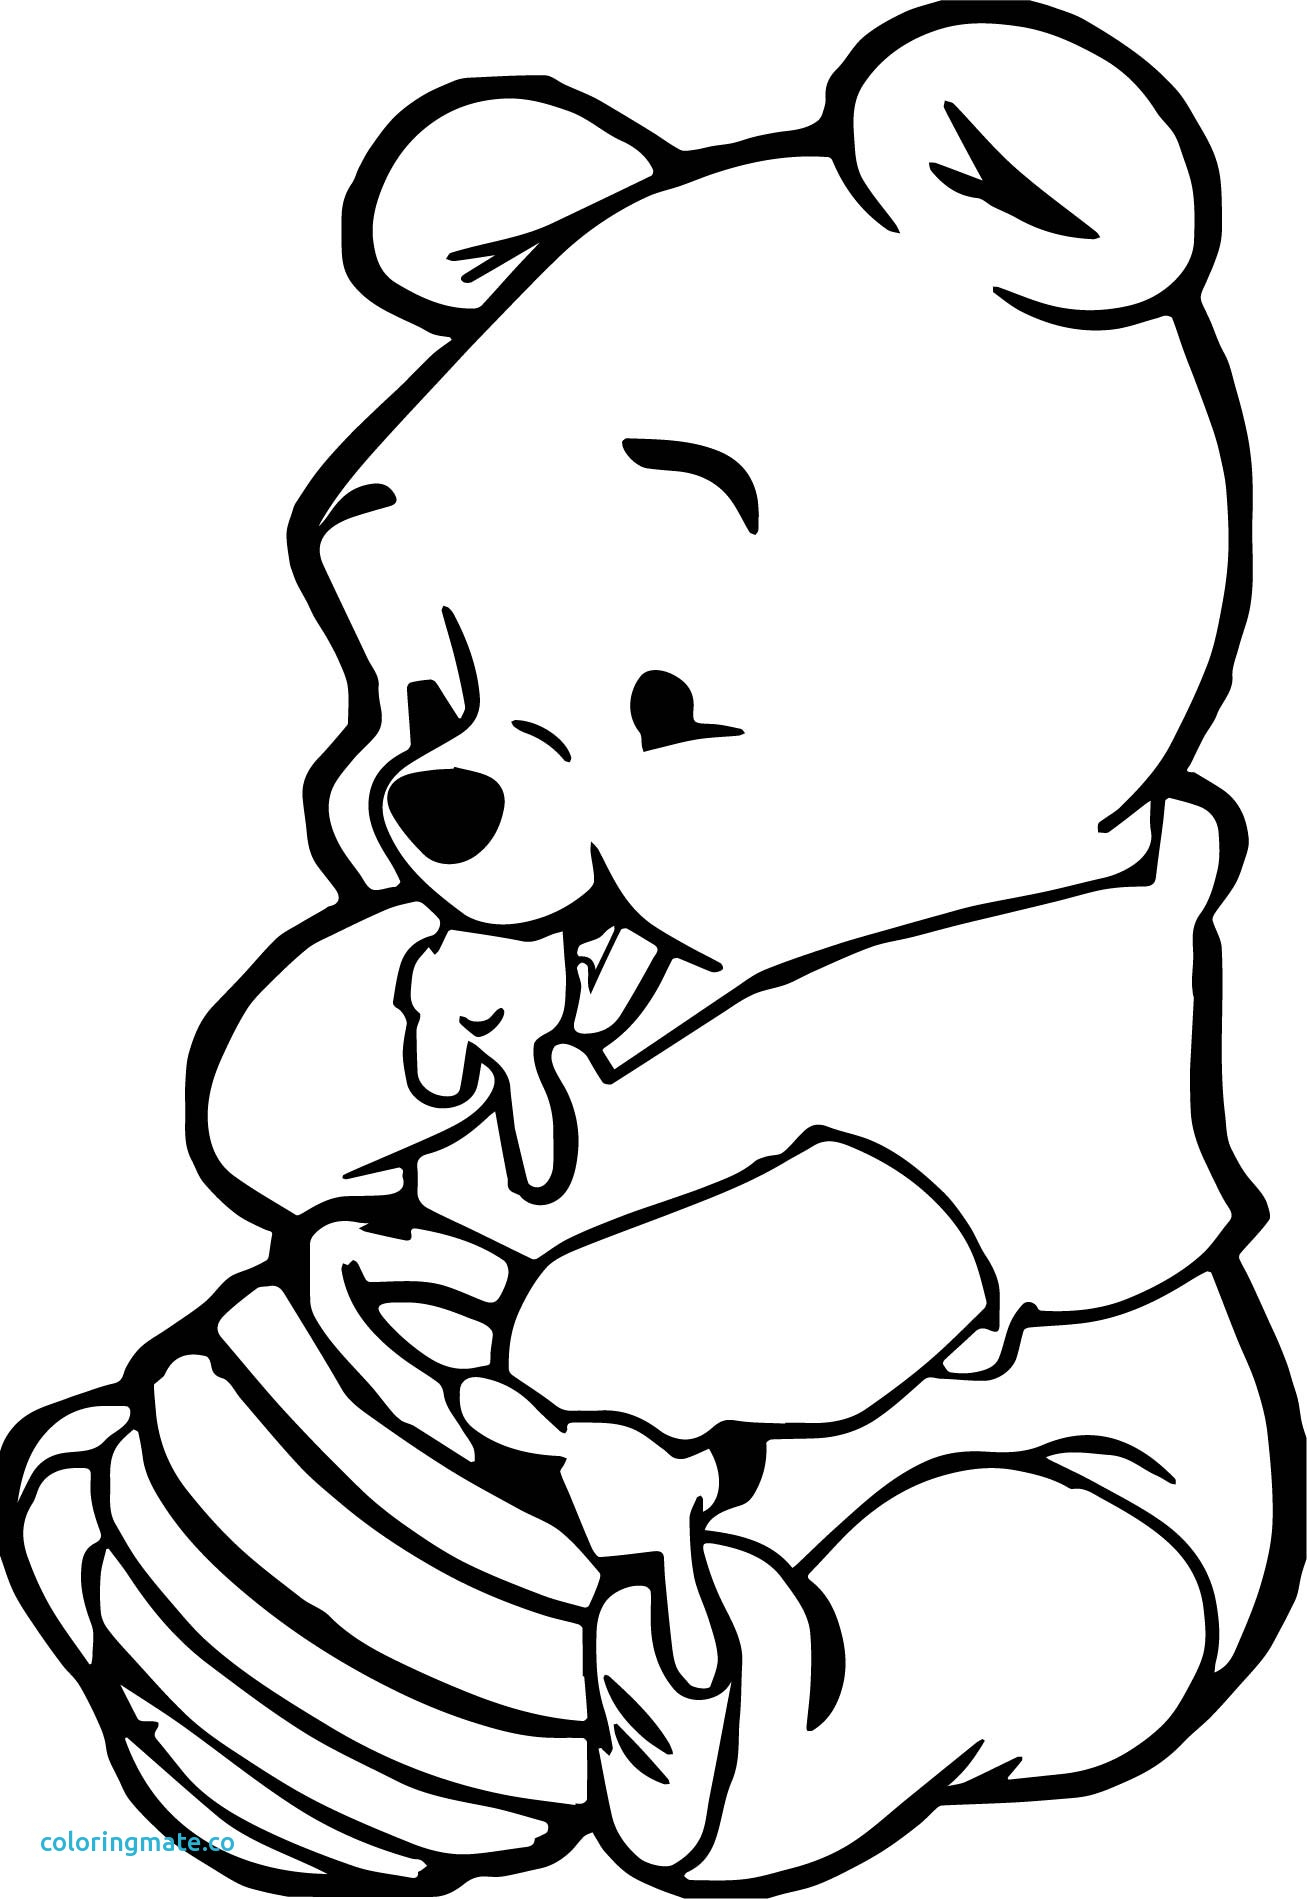 winnie the pooh drawing cute winnie the pooh black and white thanksgiving clipart the pooh drawing winnie